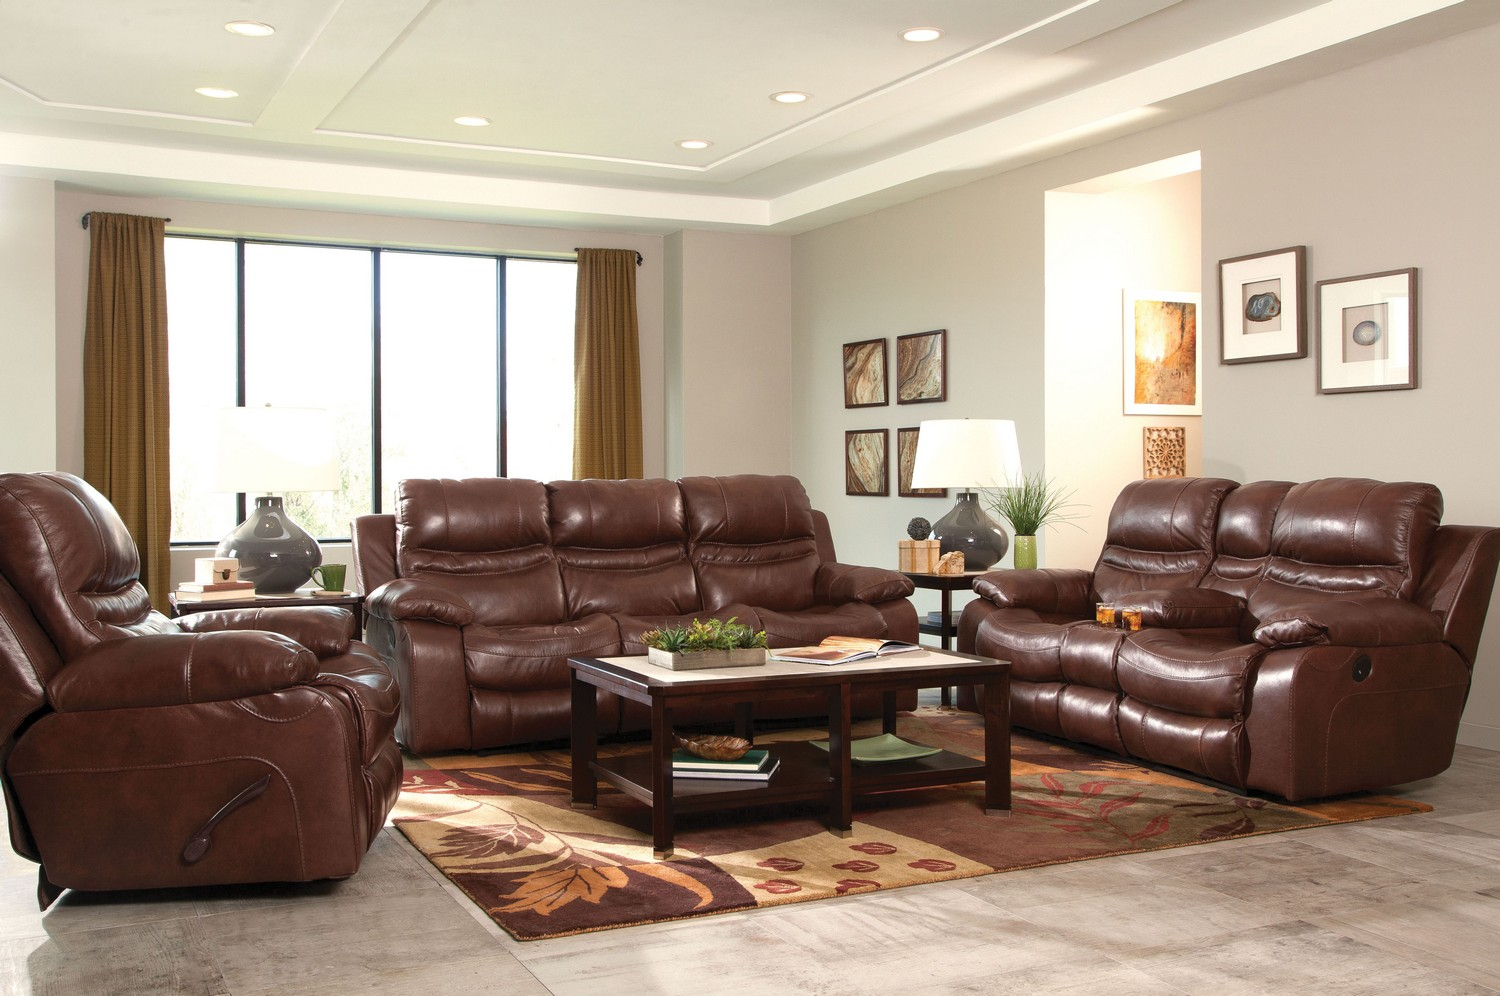 Ordinaire CatNapper Patton Top Grain Italian Leather Lay Flat Power Reclining Sofa  Set   Walnut